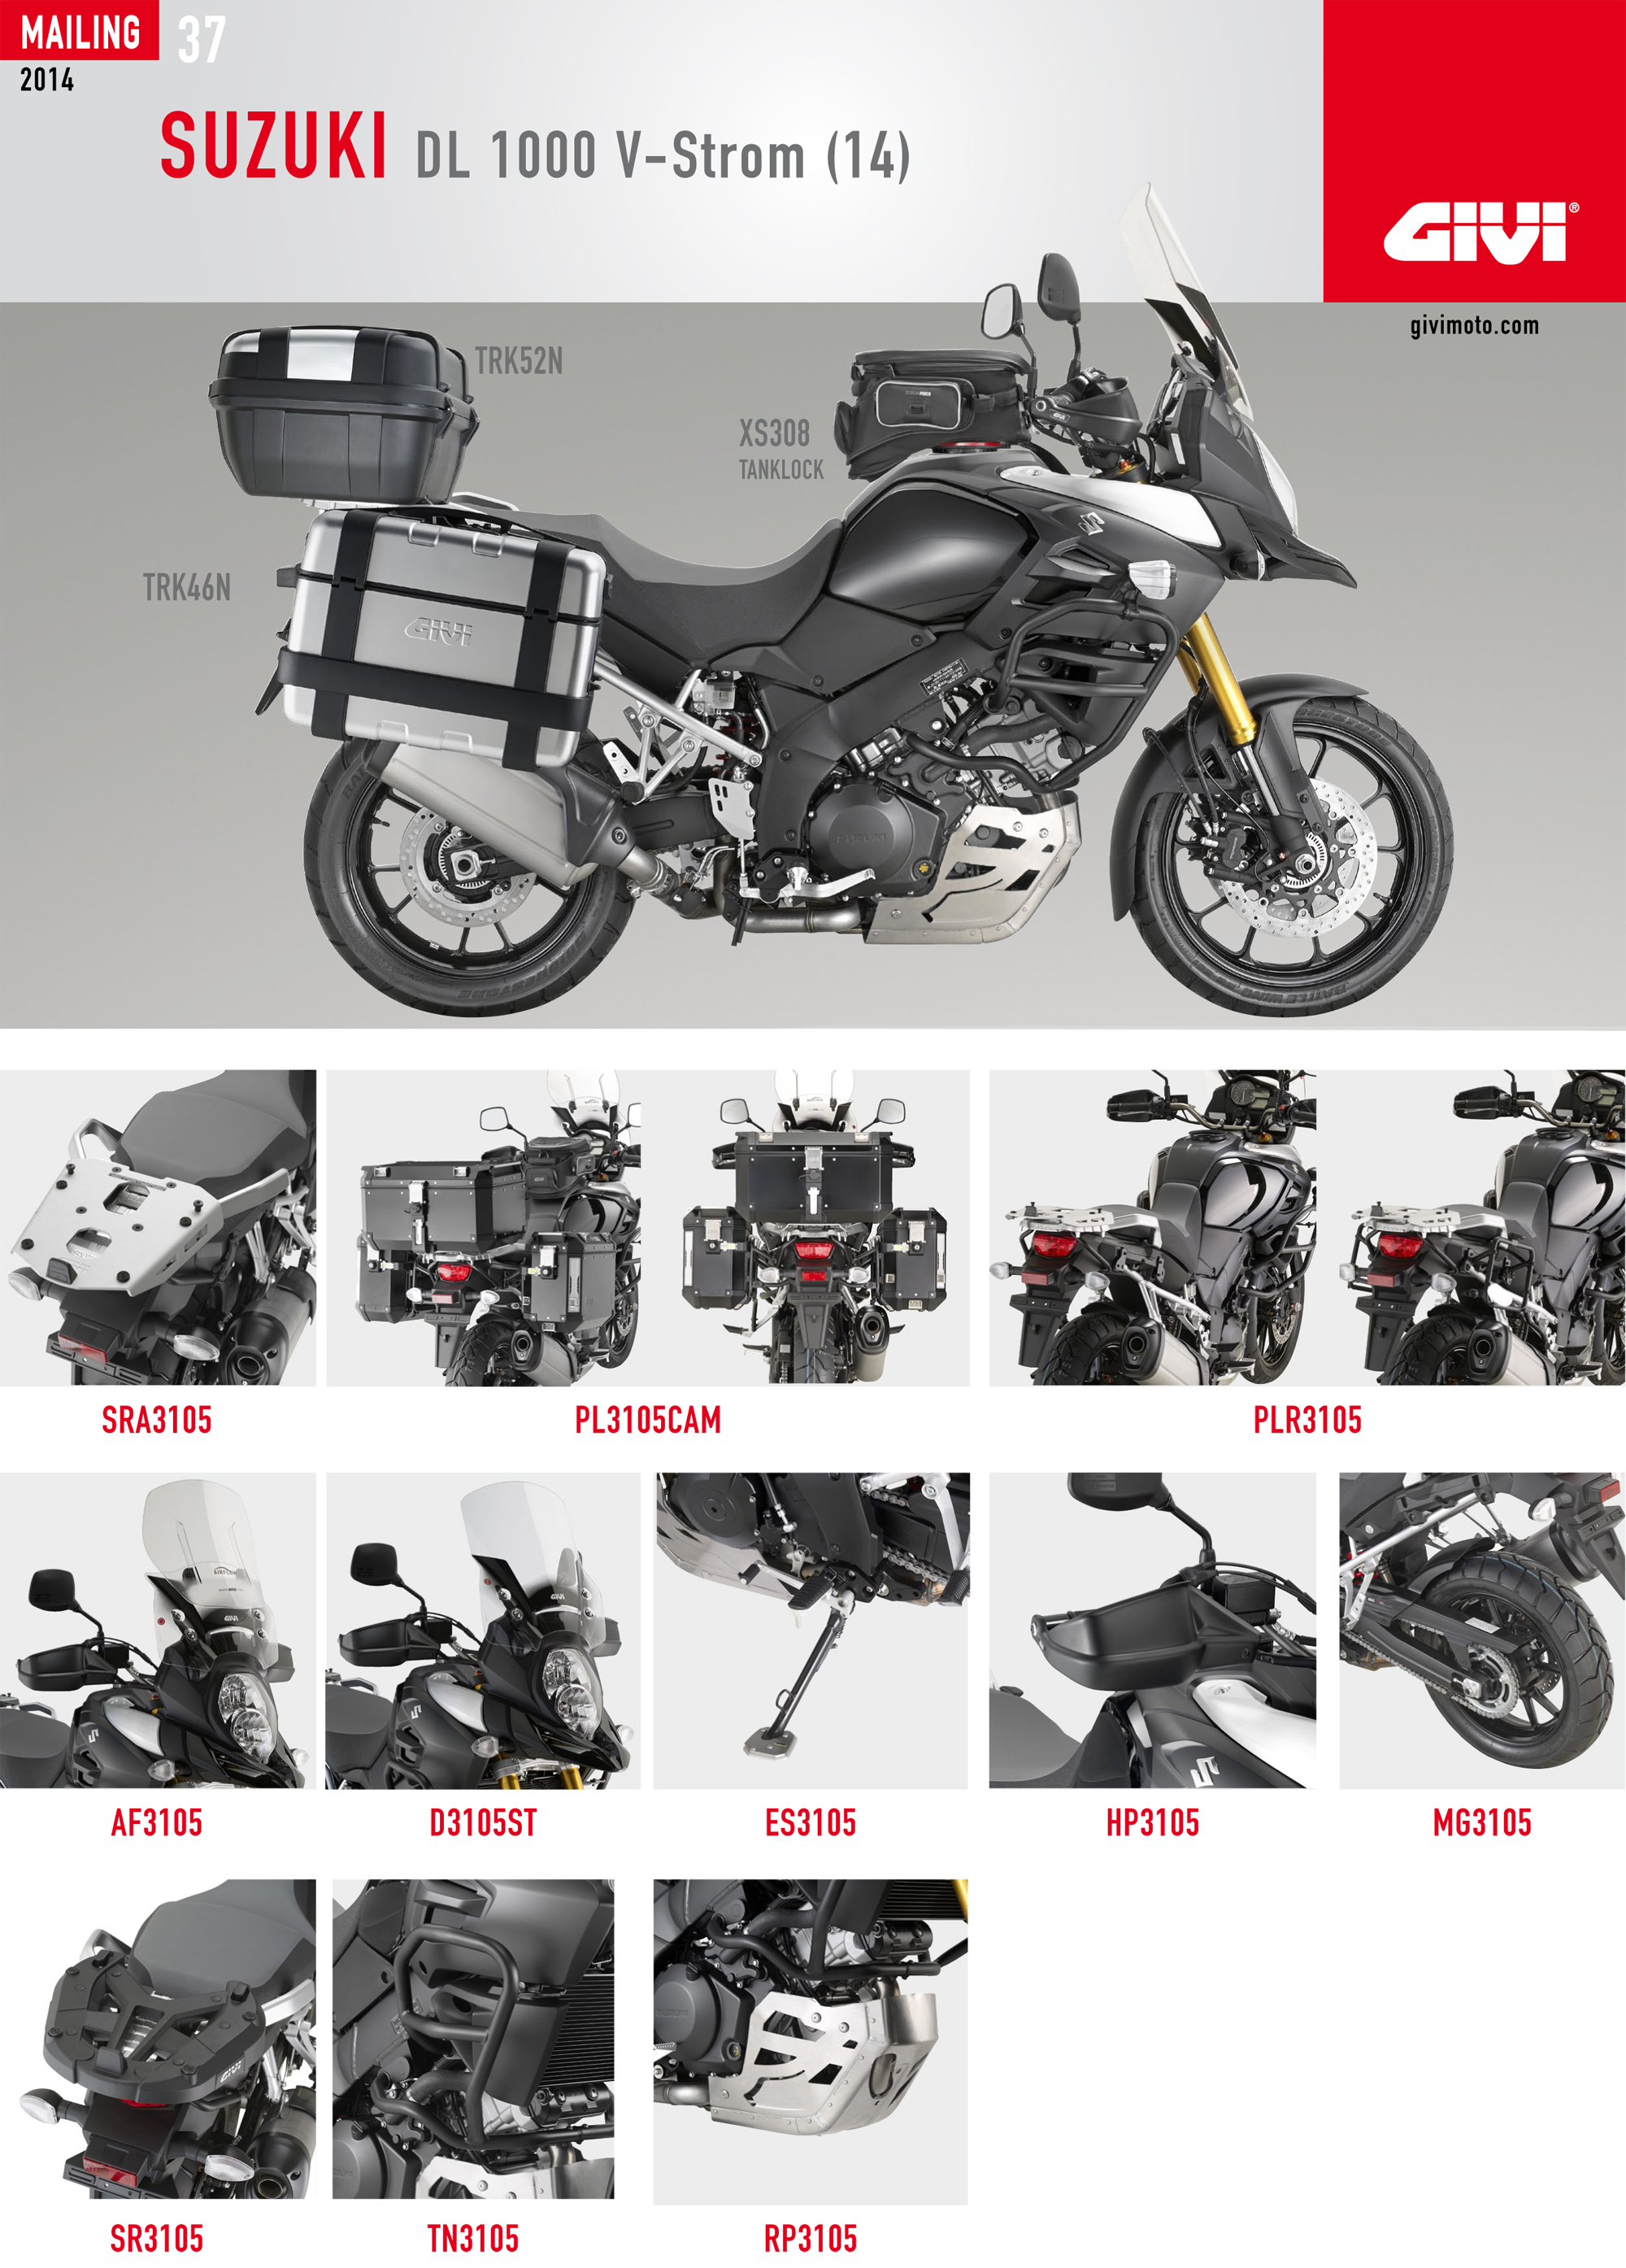 Klr 650 Owners Manual 2014 Today Guide Trends Sample Kawasaki Wiring Diagram 2013 Suzuki V Strom Decals Diagrams Repair Specifications